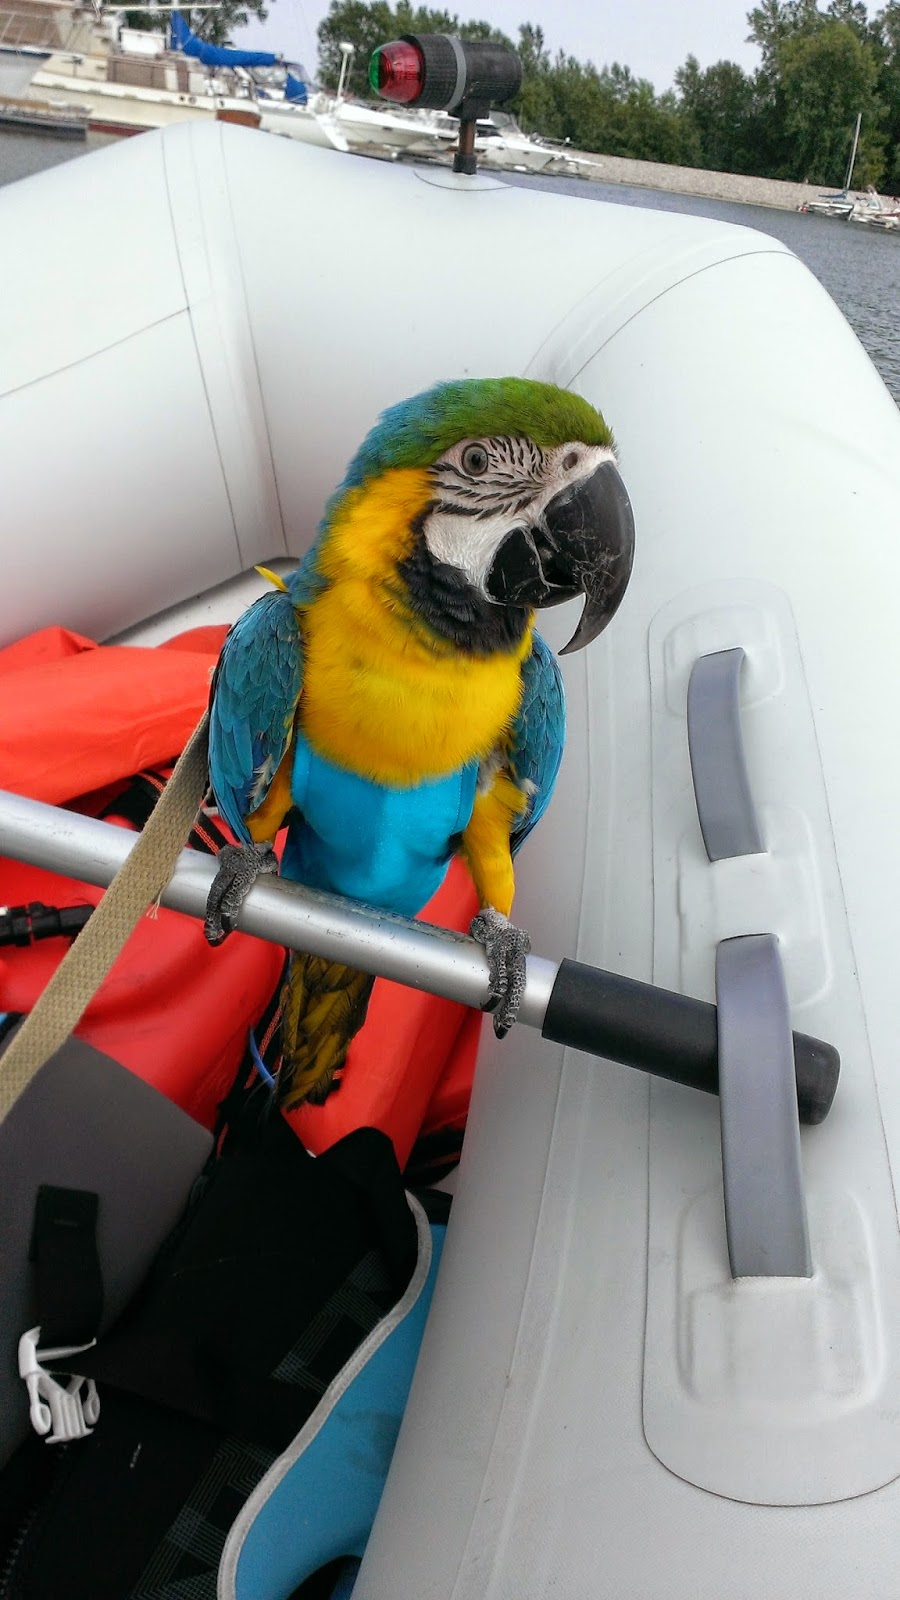 Blue and Gold Macaw parrot dinghy boat marina